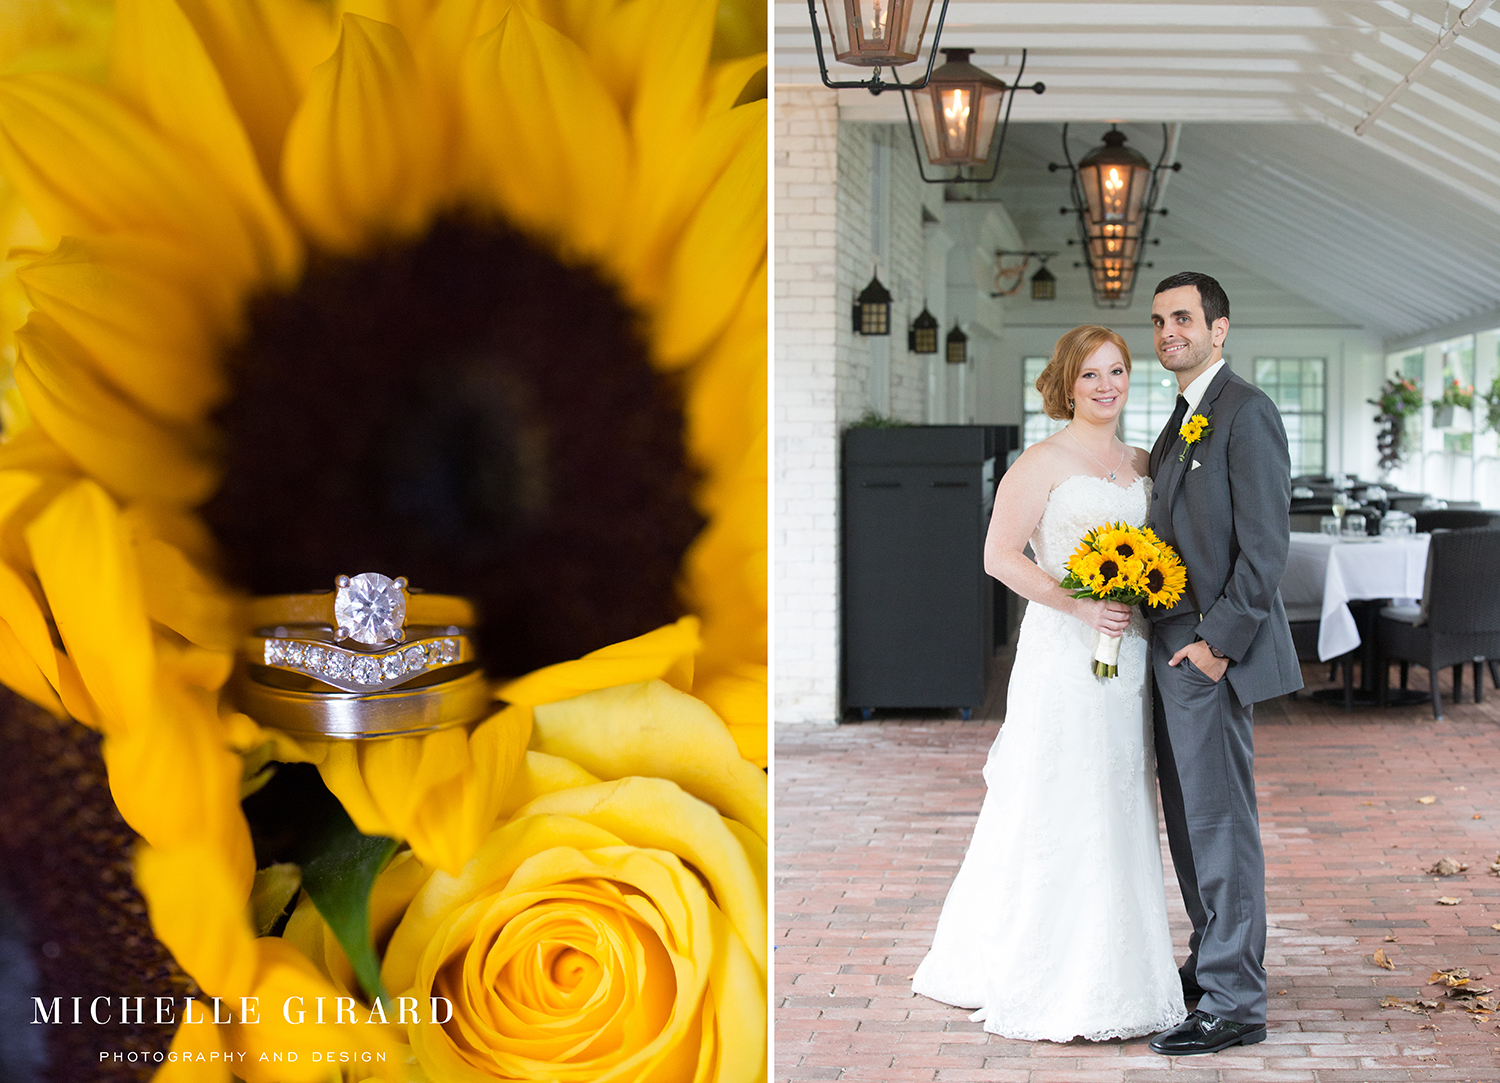 SeptemberWedding_TheLordJefferyInn_AmherstMa_MichelleGirardPhotography05.jpg